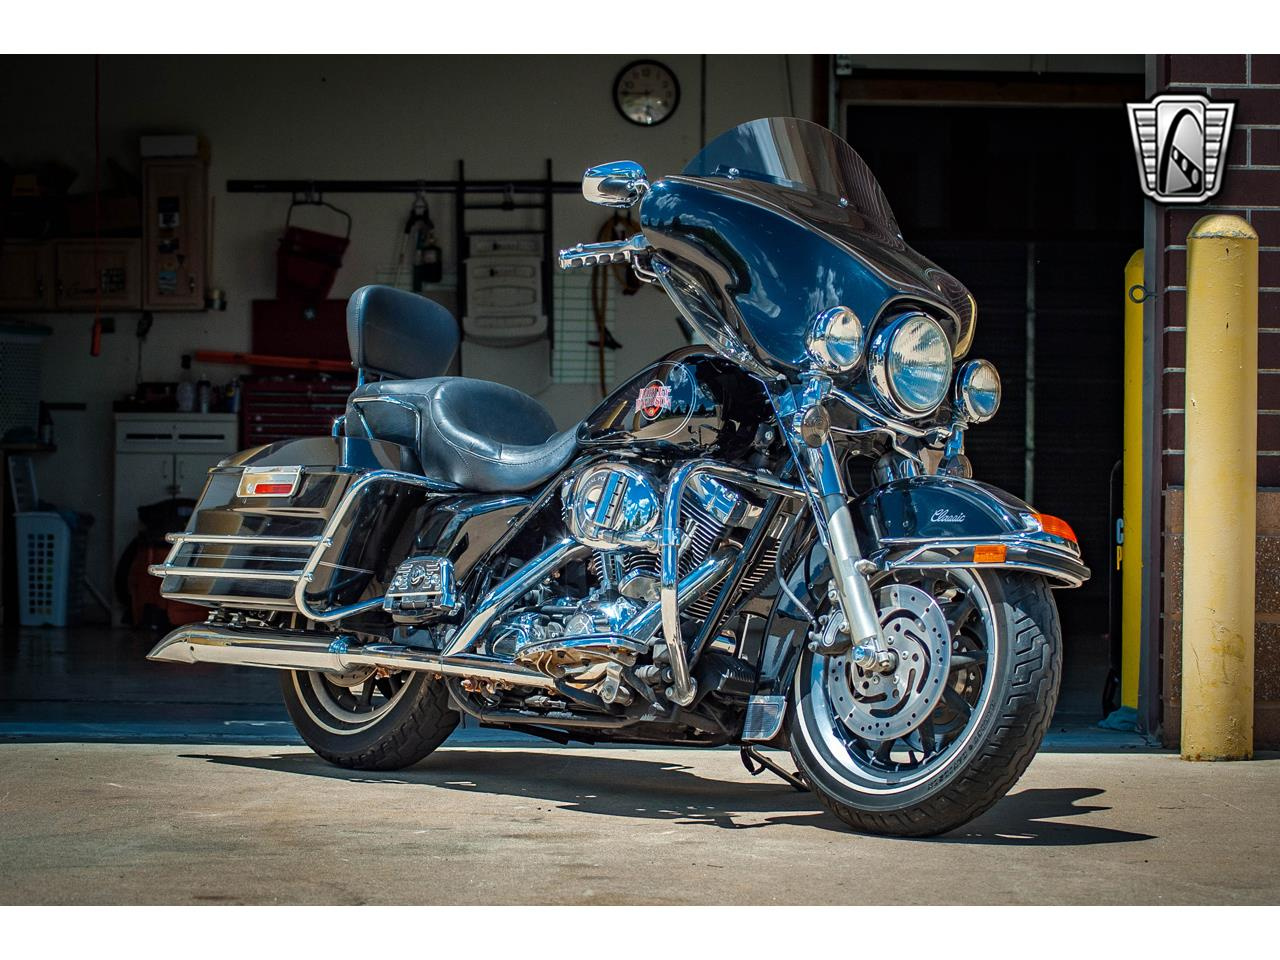 2004 Harley-Davidson Motorcycle for sale in O'Fallon, IL – photo 54